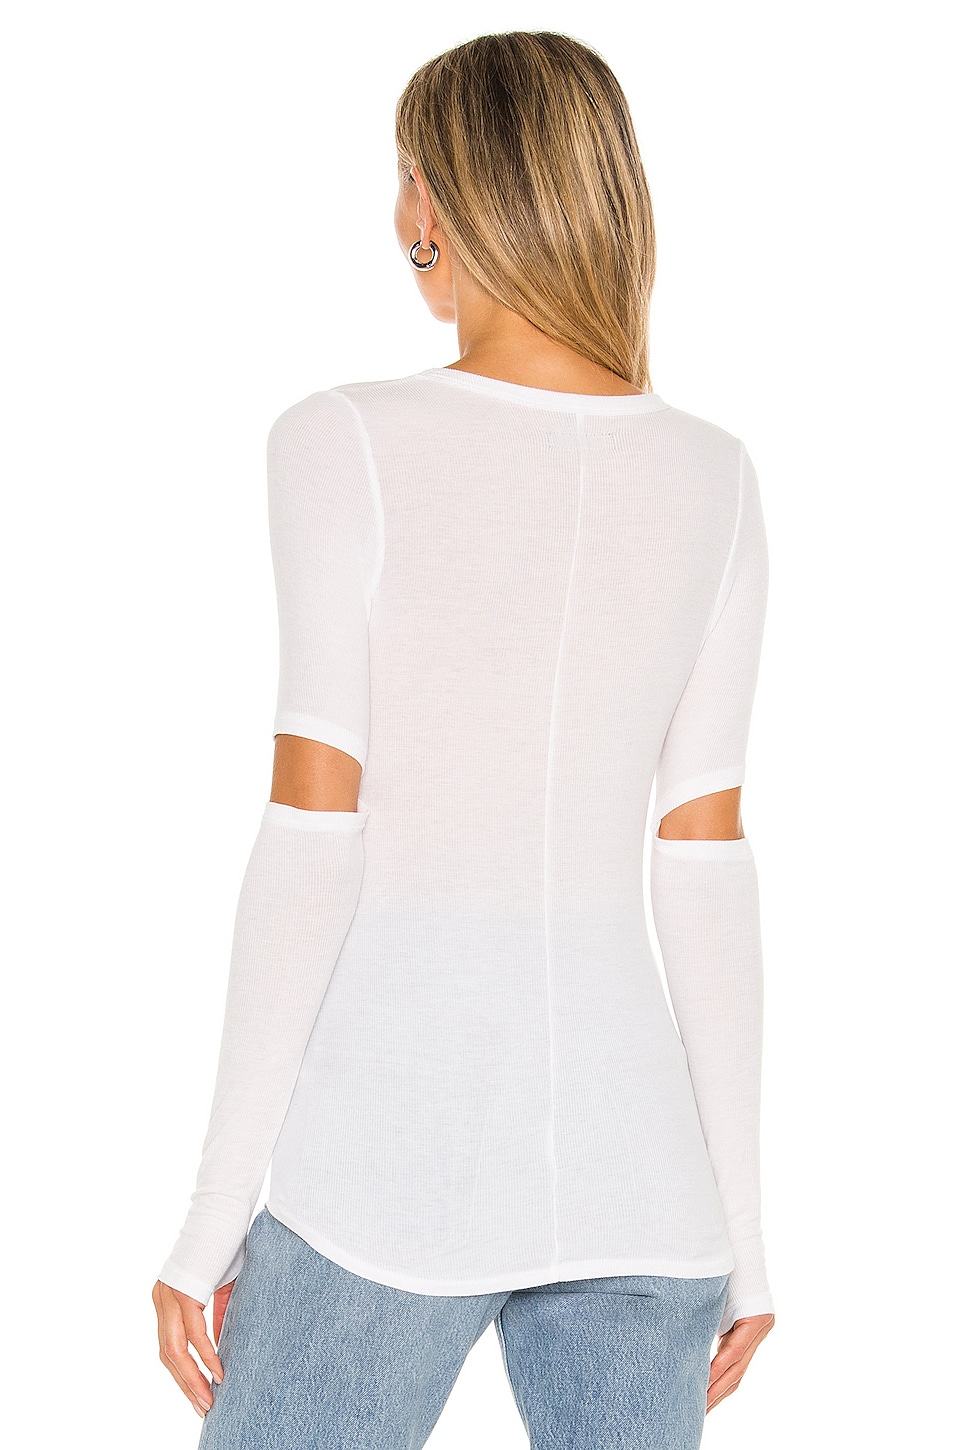 Solomon Elbow Cut Out Tee, view 3, click to view large image.